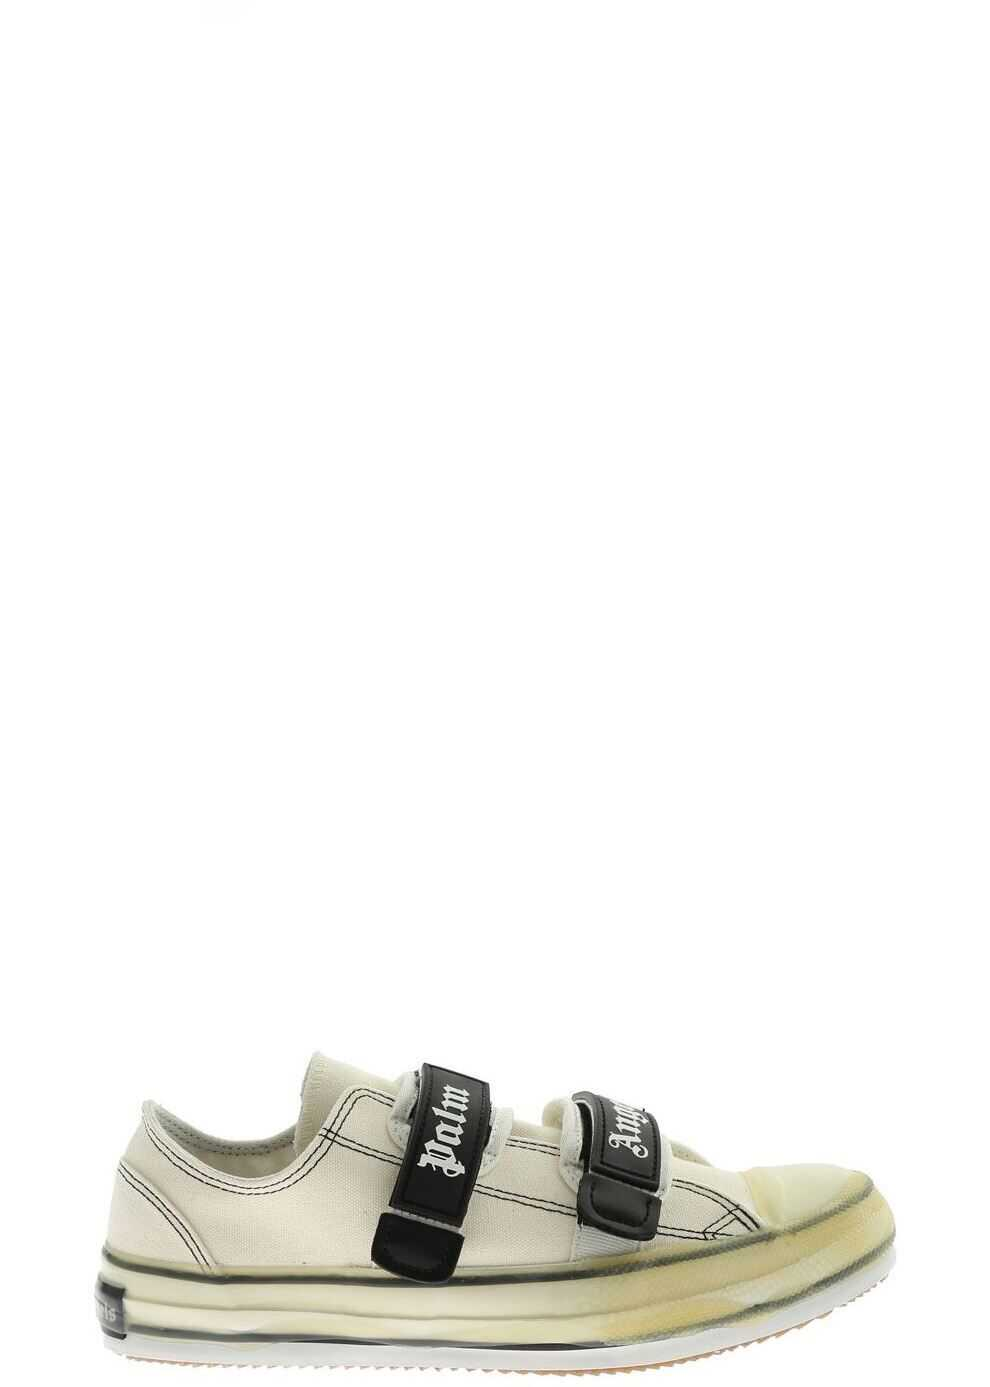 Palm Angels Vulcanized Sneakers In White White